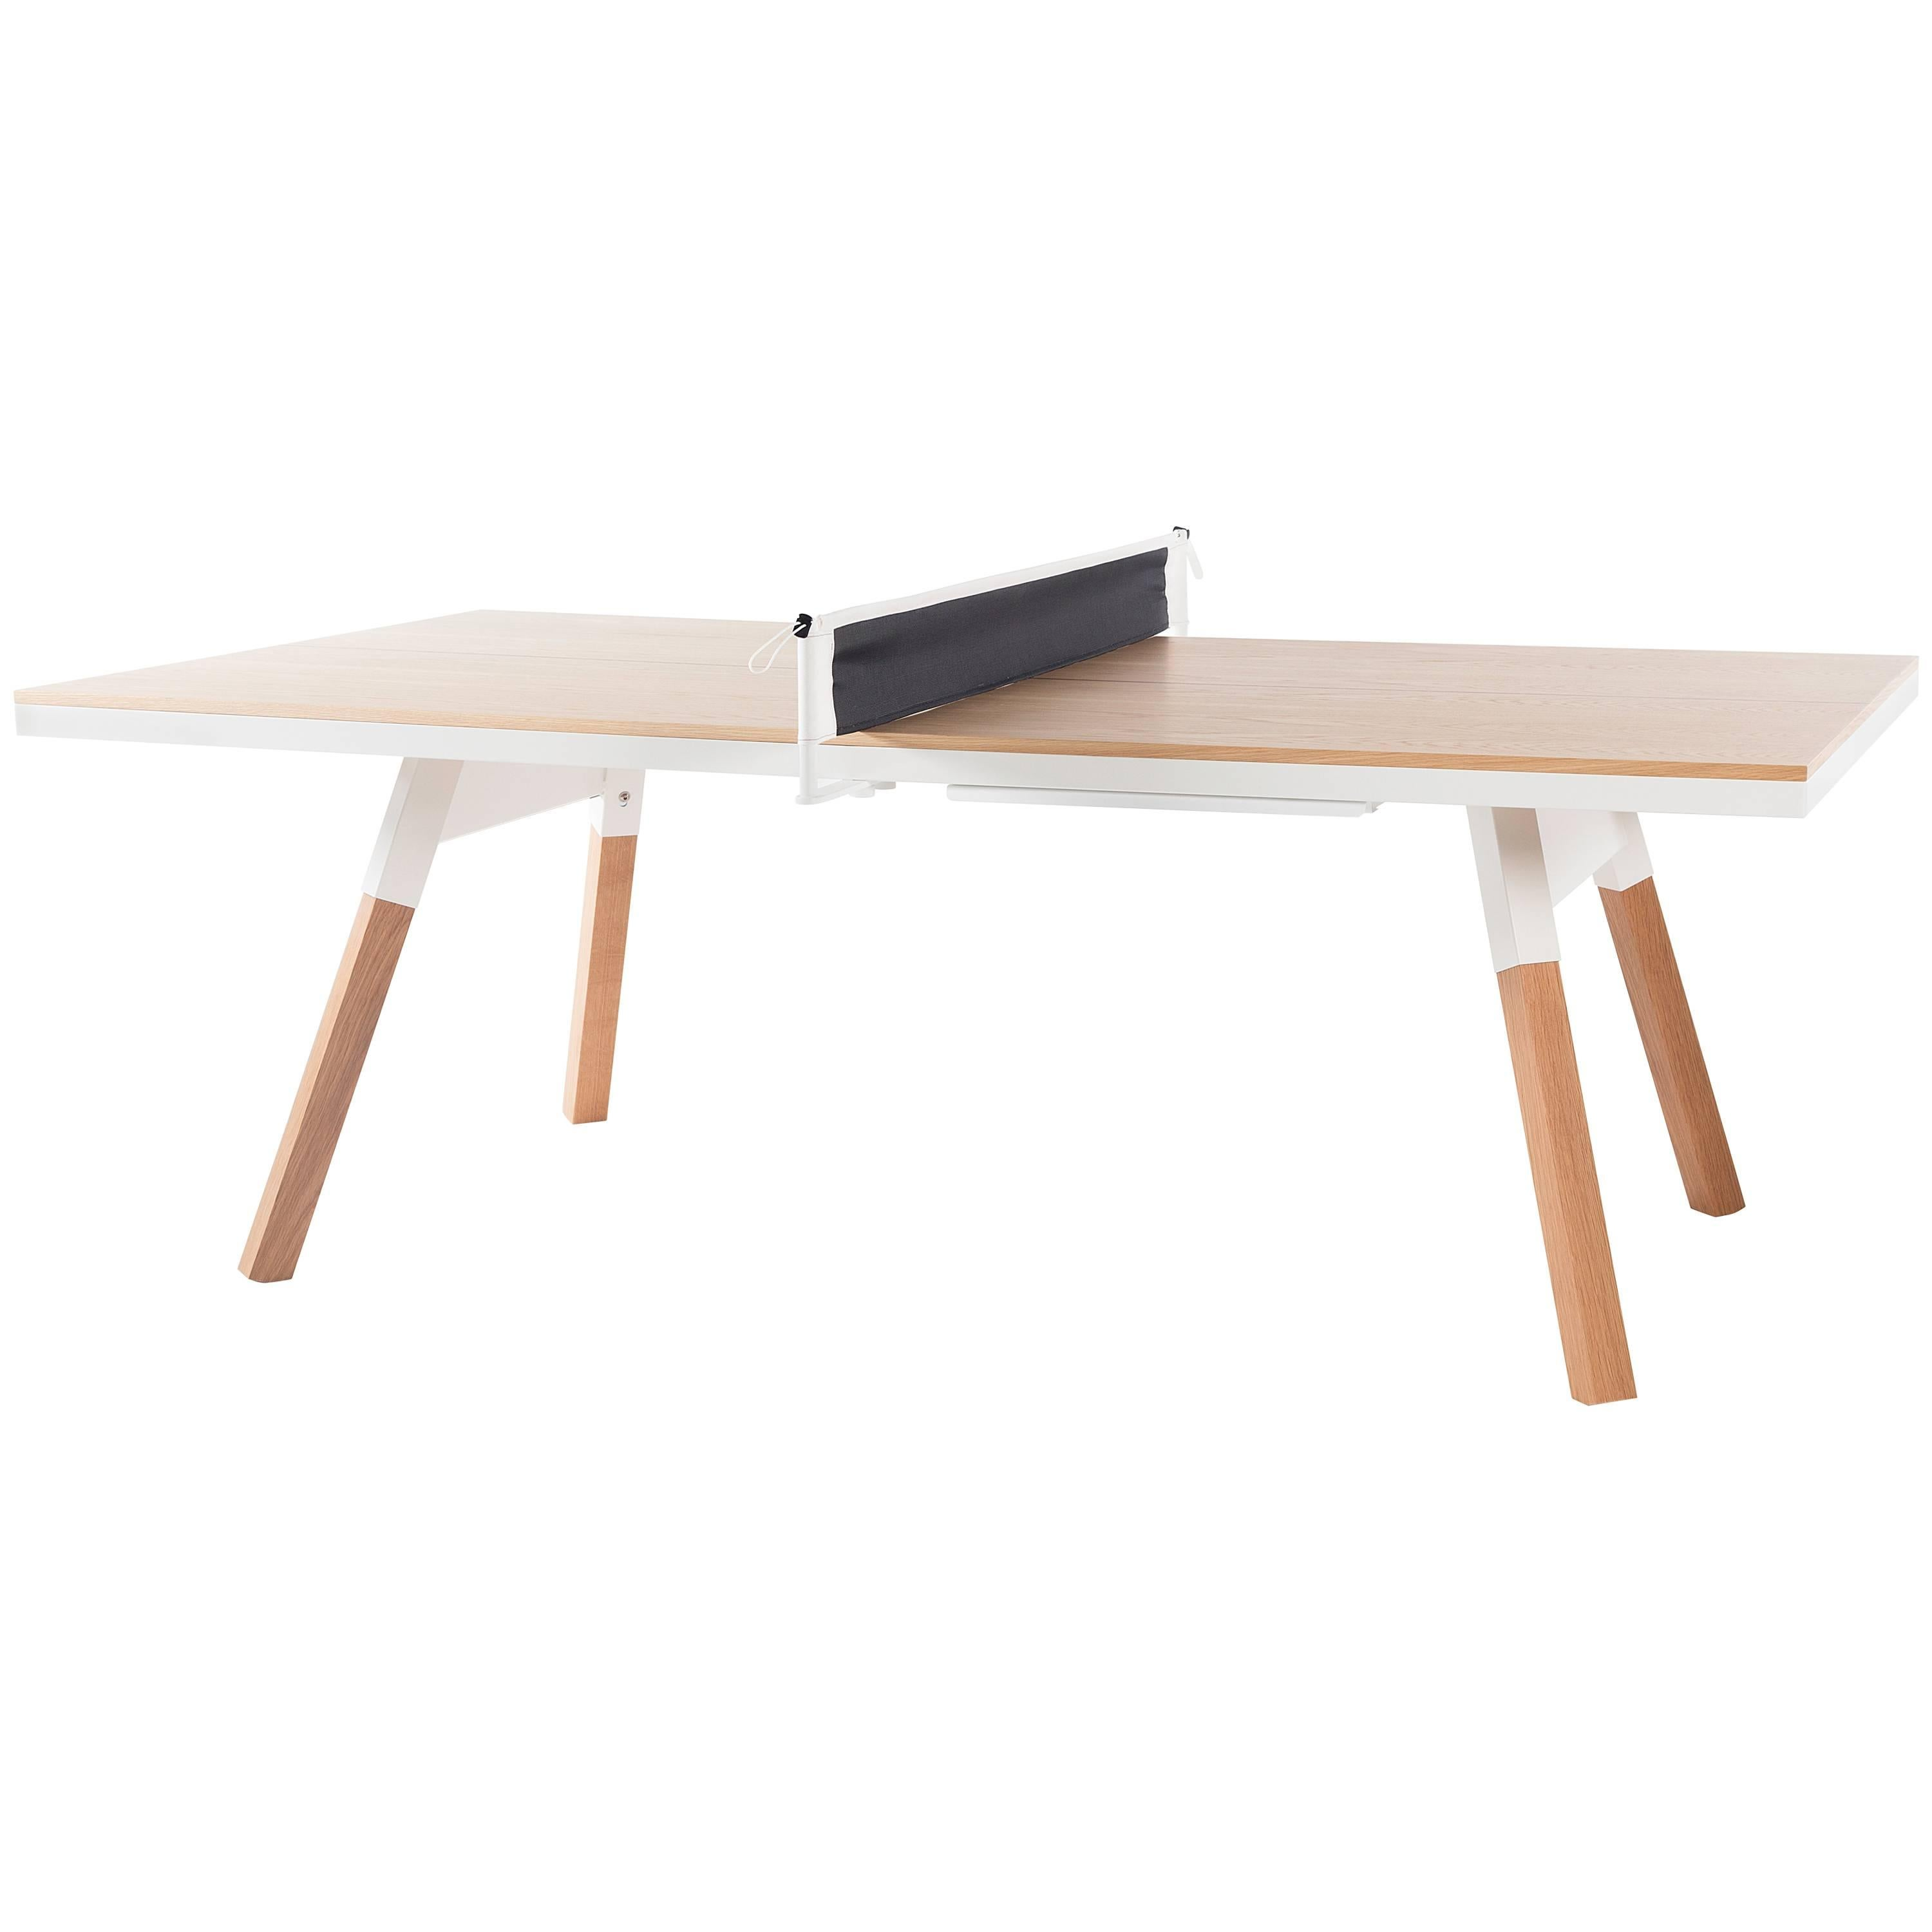 You & Me Wooden Top 220 Ping Pong Table in Oak and White by RS Barcelona